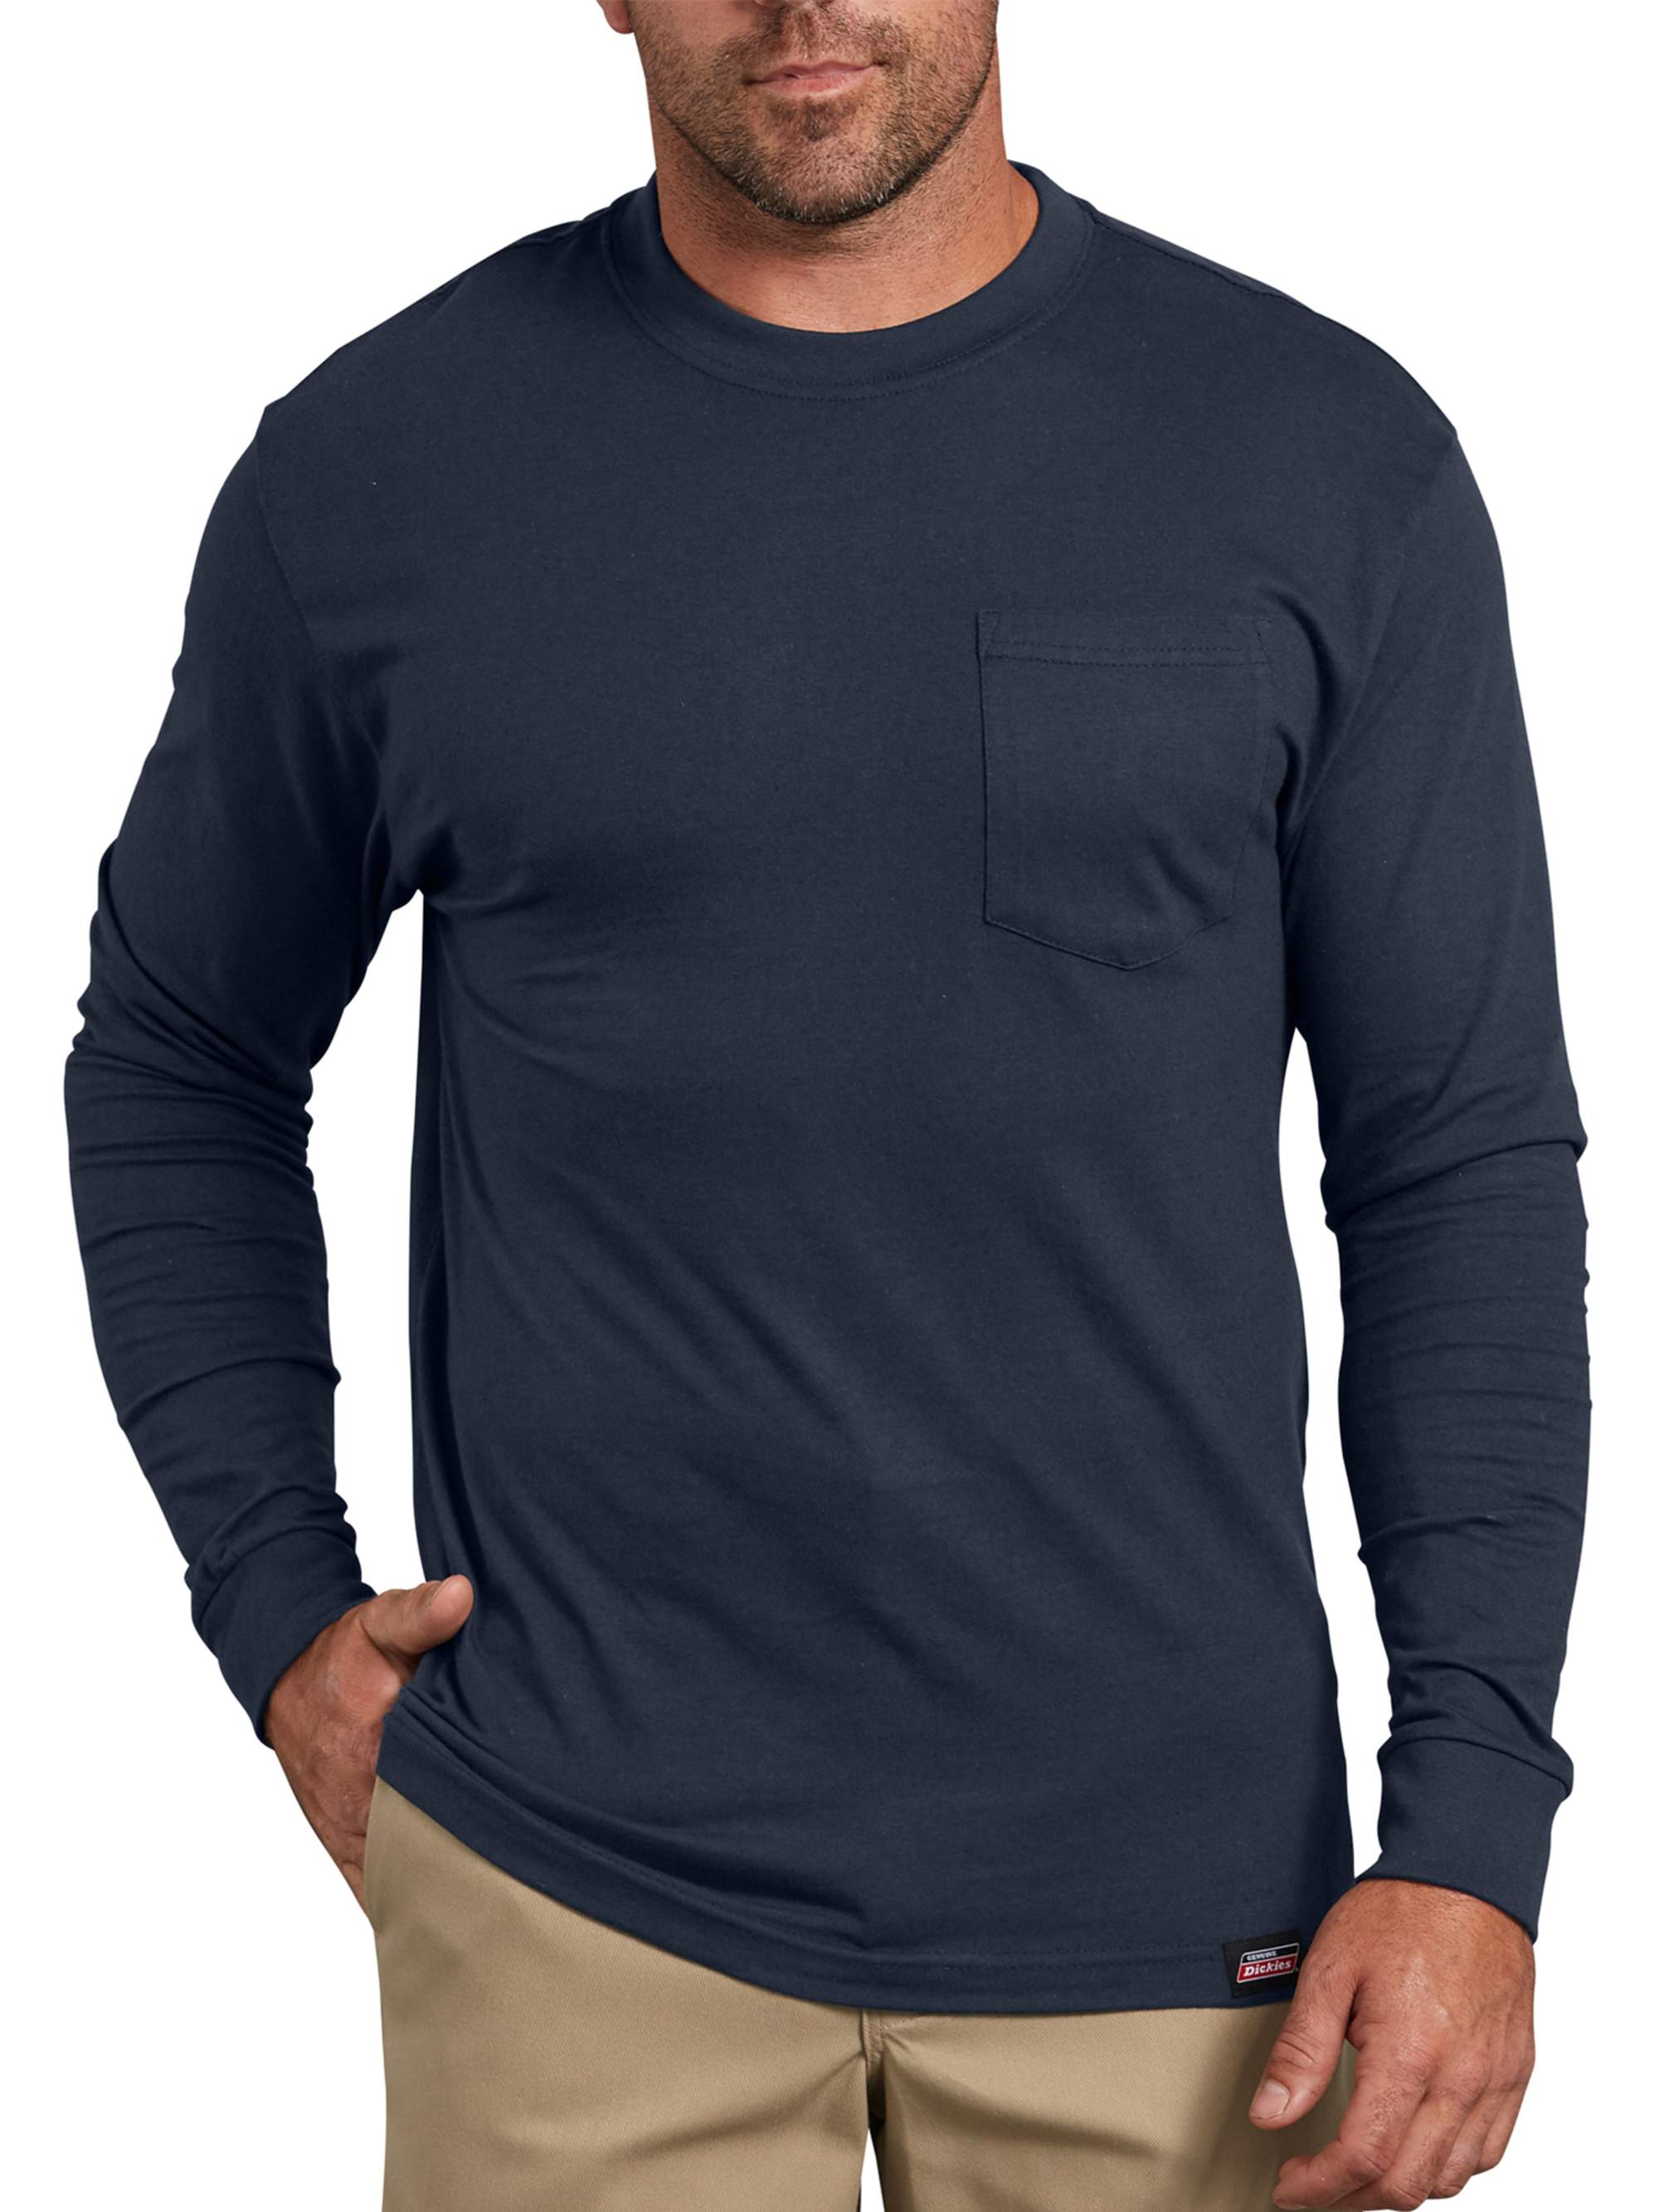 Big Men's Heavy Weight Long Sleeve Pocket T-Shirt, 2-Pack